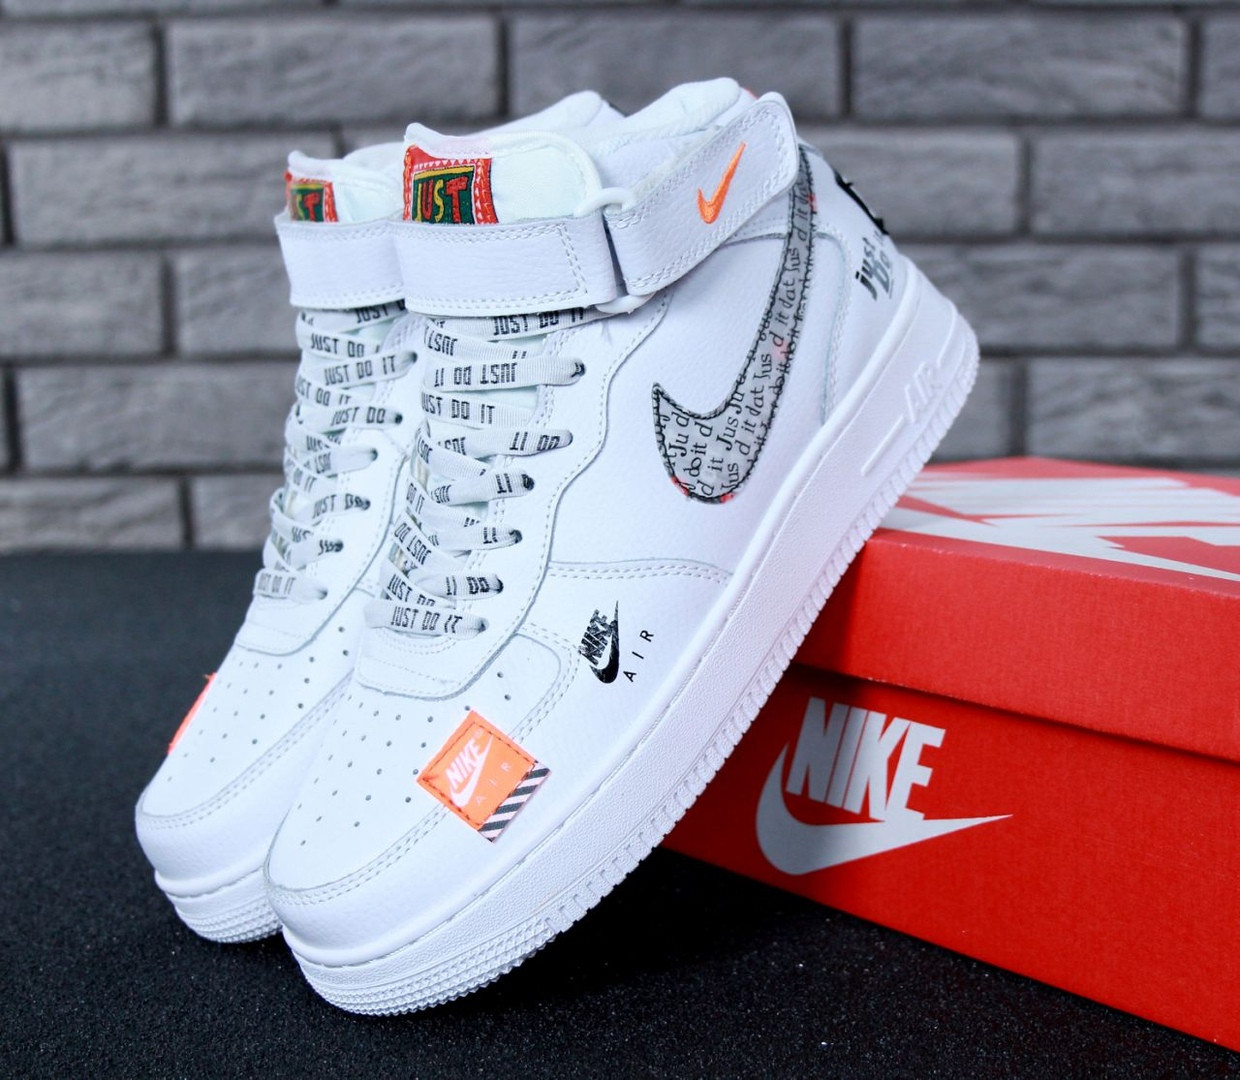 fdee325b Мужские кроссовки Nike Air Force 1 Hi Just Do It. Живое фото (Реплика ААА